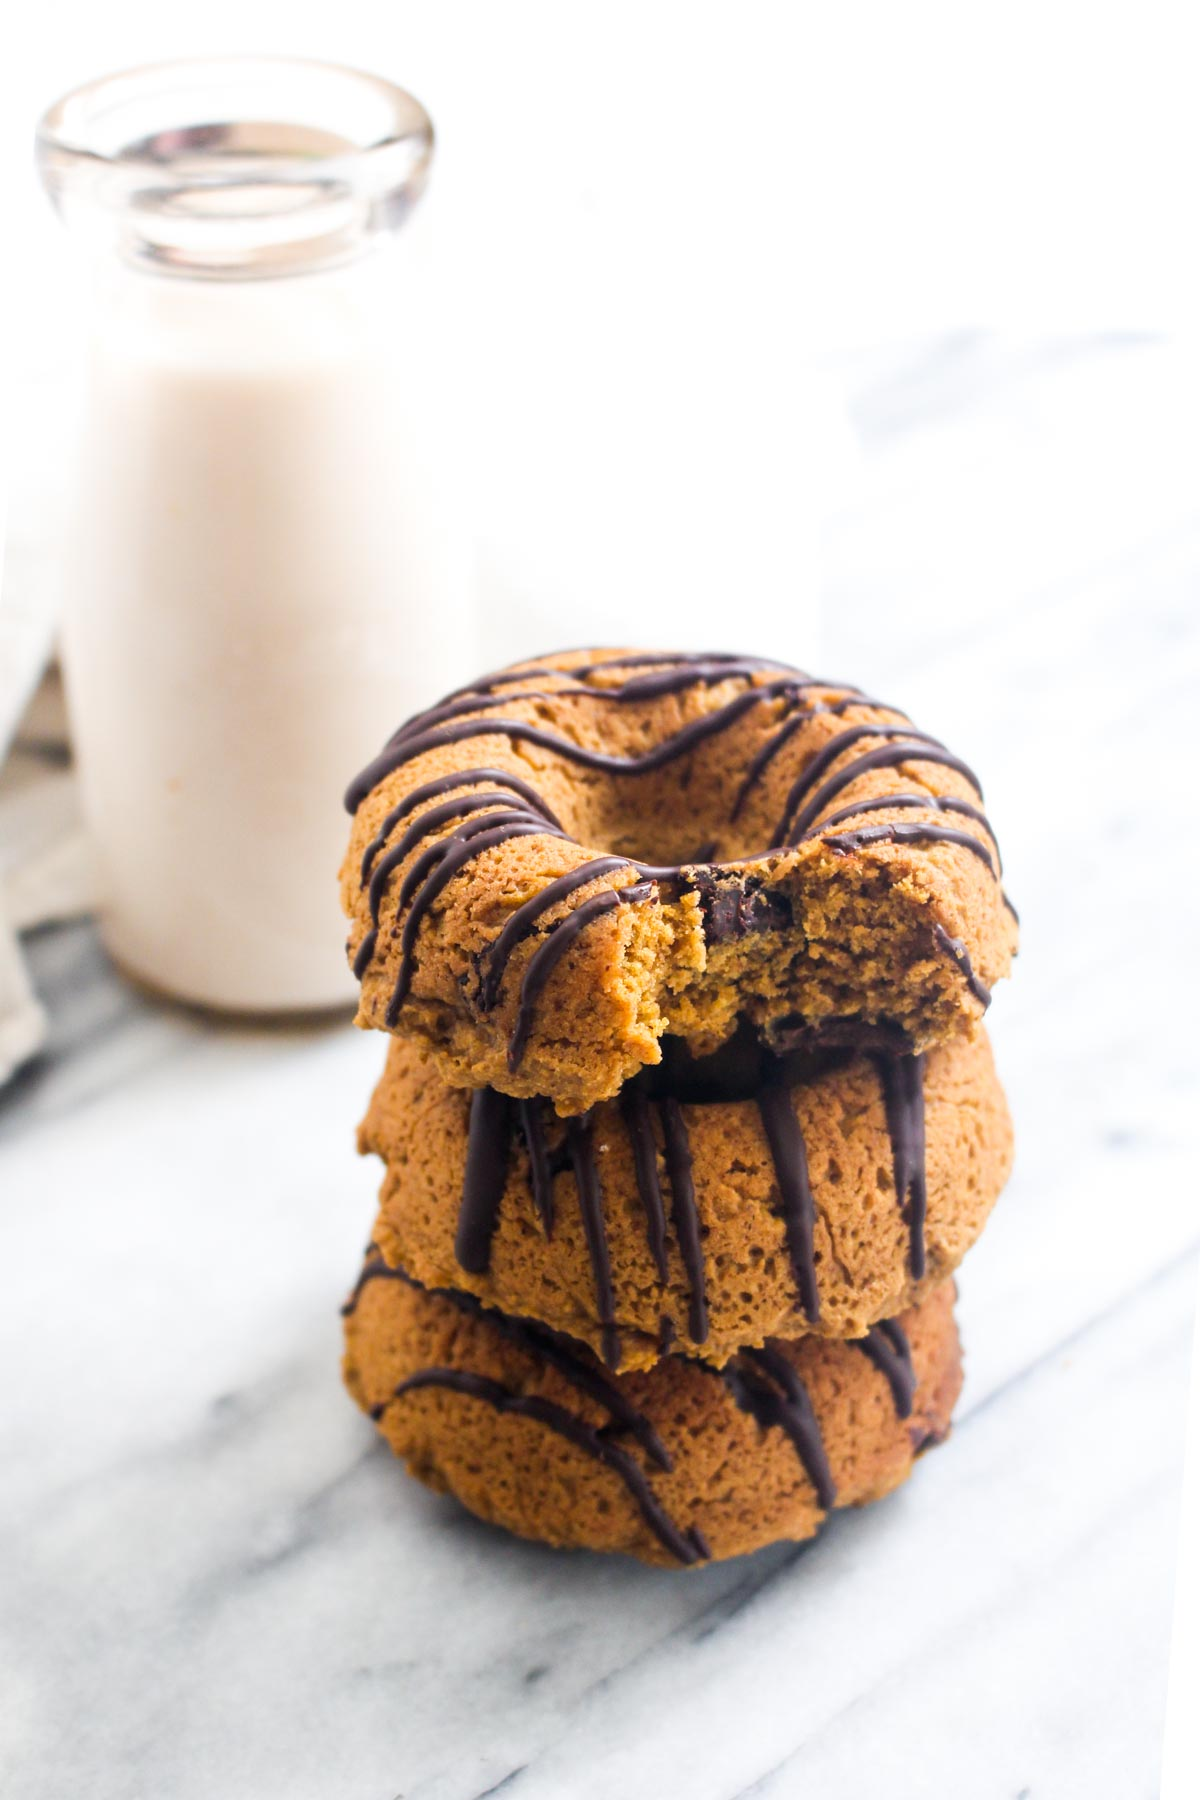 These Pumpkin Chocolate Chip Donuts are a secretly healthy dessert! They are gluten-free, vegan, and made with natural sweeteners. | CatchingSeeds.com